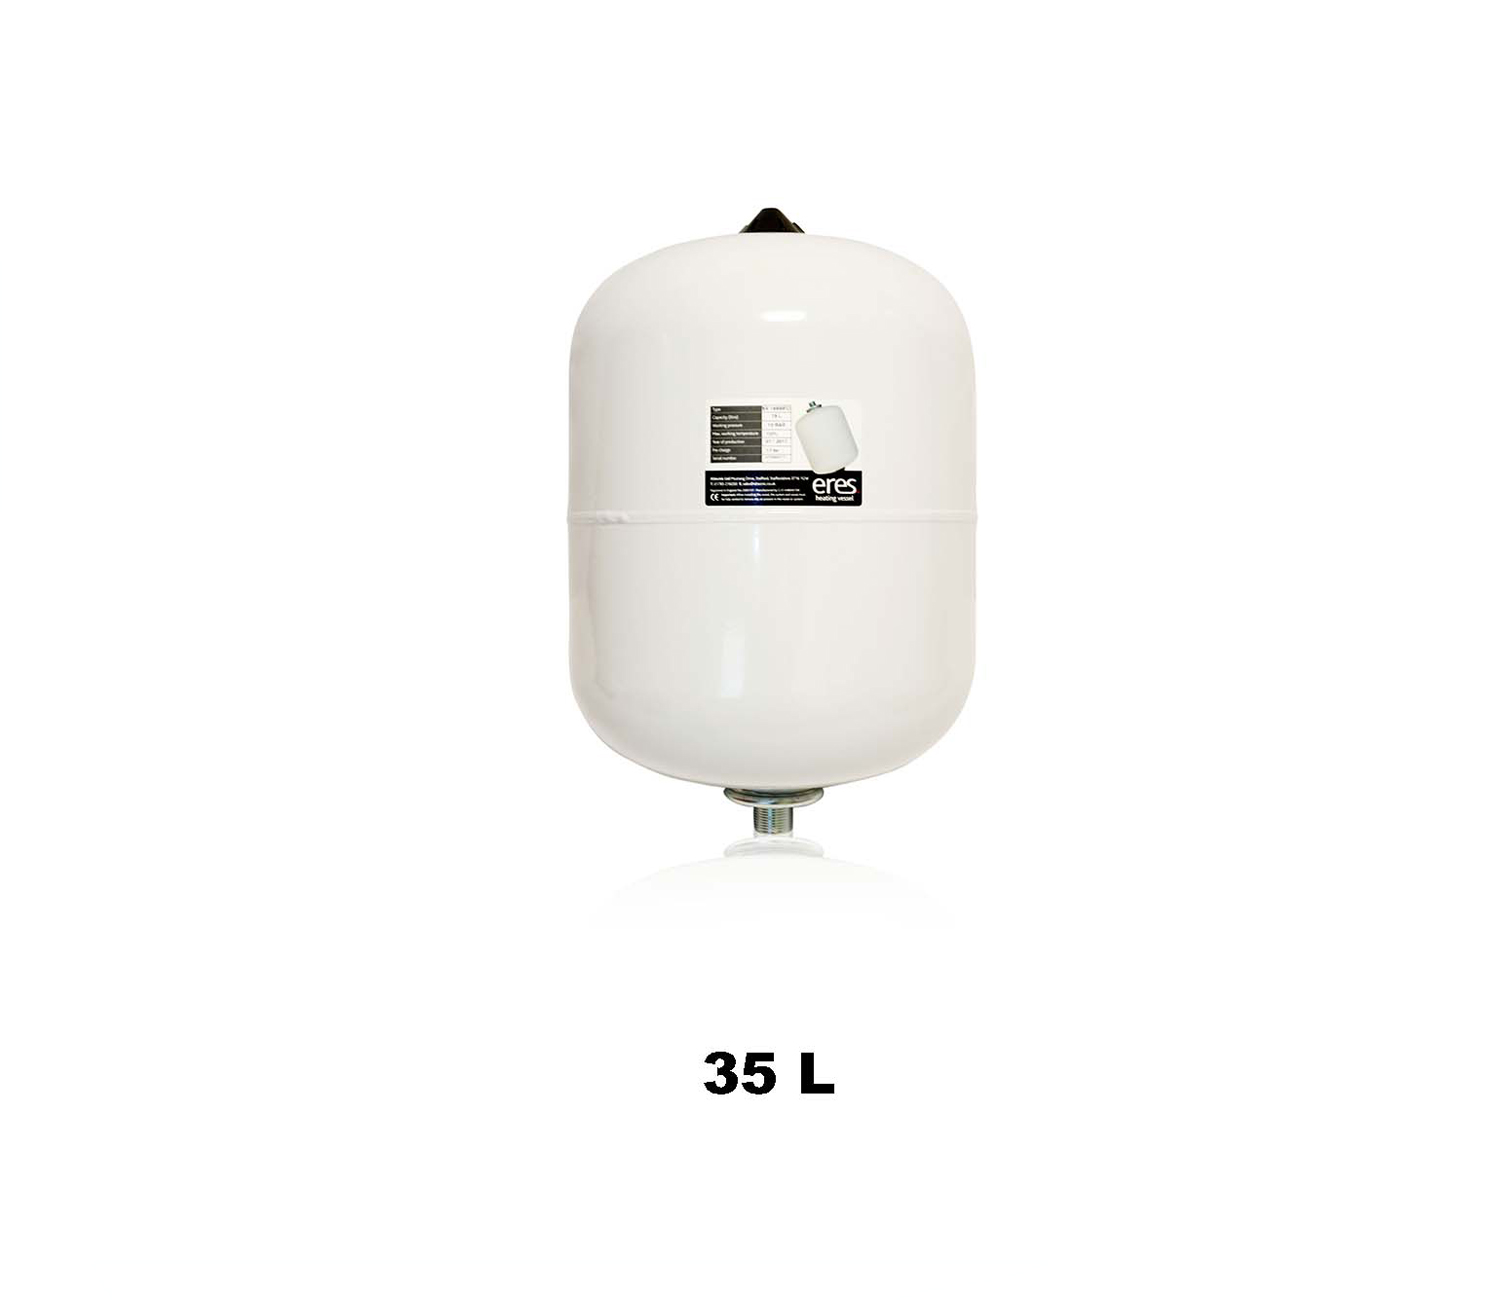 Solar expansion Vessel 35 L high temp